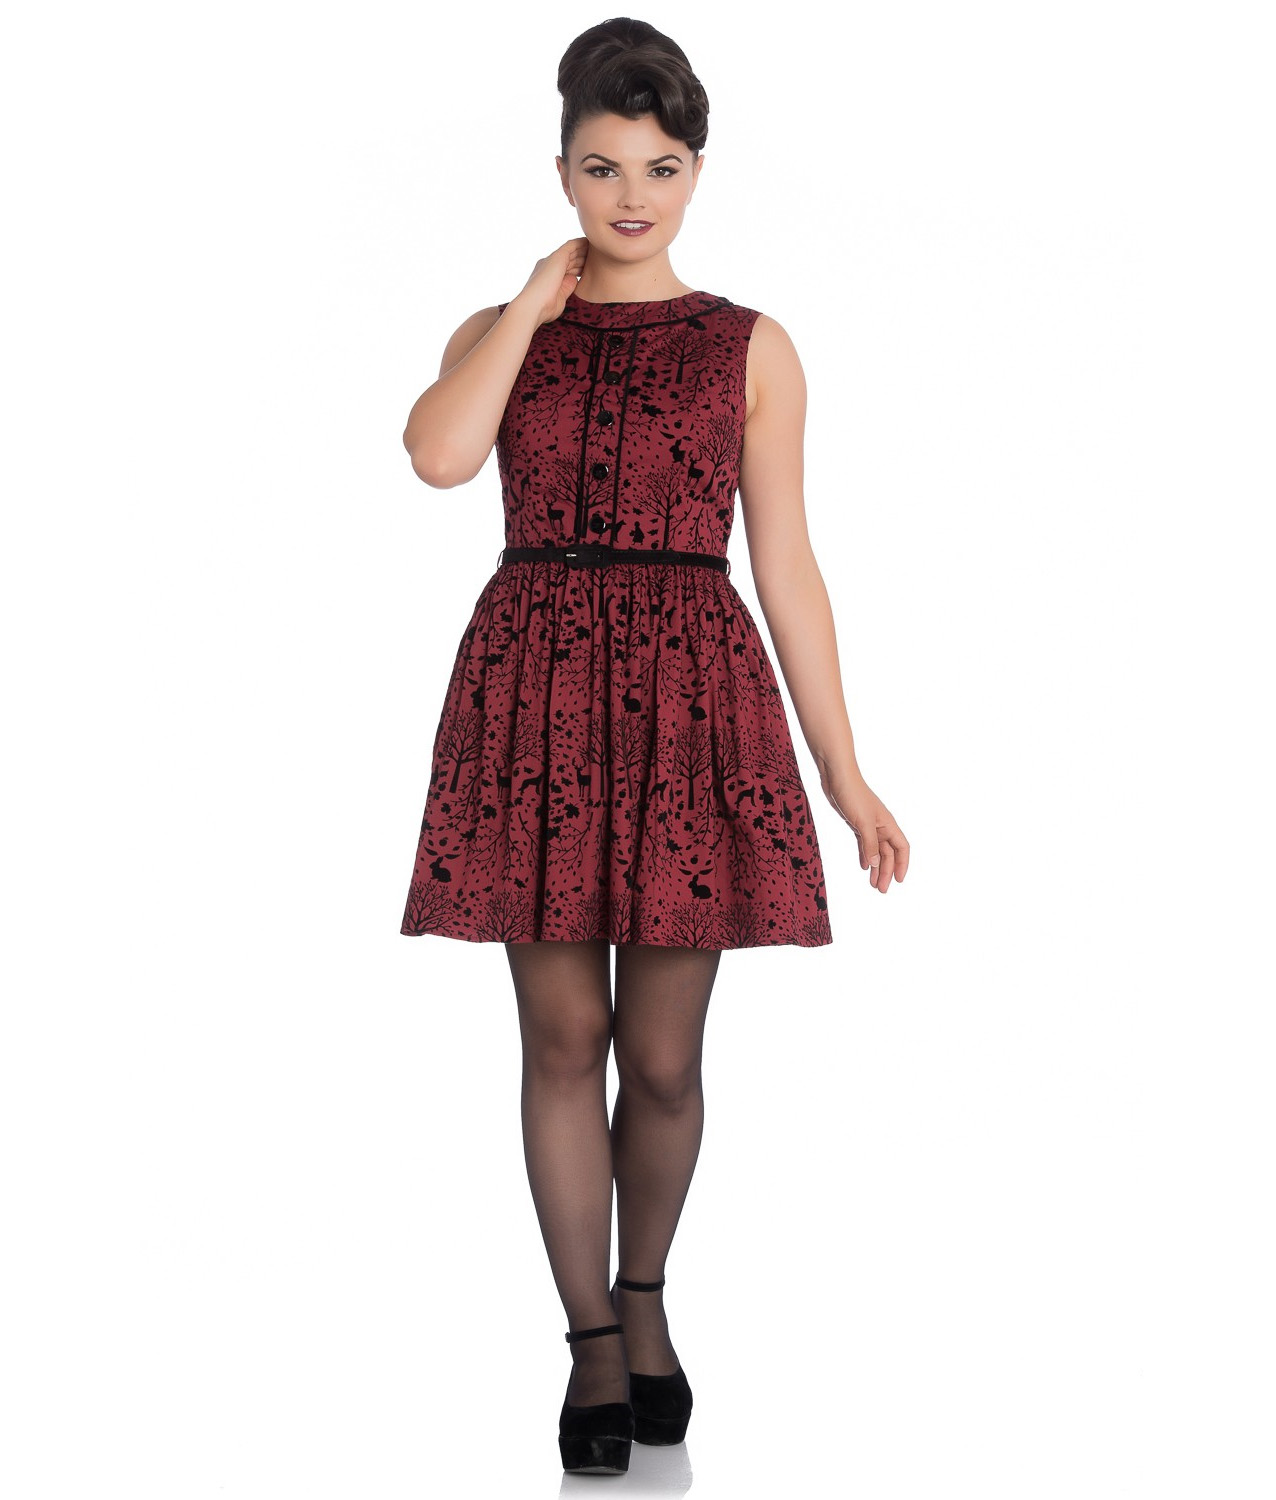 Hell-Bunny-50s-Mini-Skater-Dress-Woodland-Trees-SHERWOOD-Black-Red-All-Sizes thumbnail 27